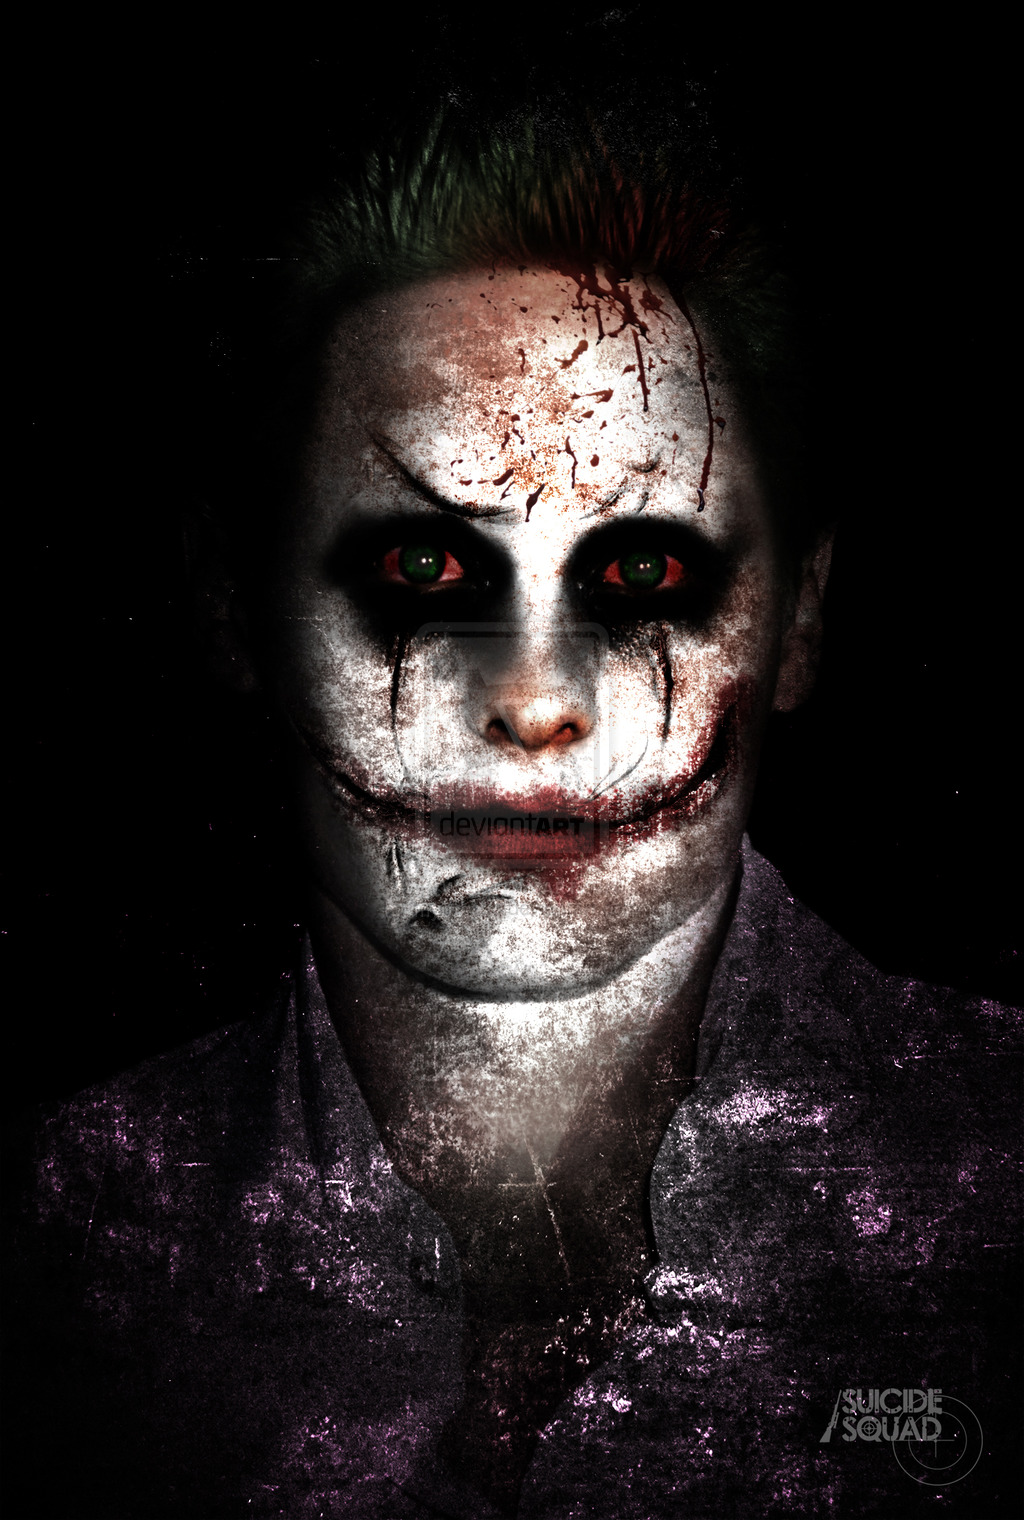 Free Download Jared Leto As The Joker By Myrmorko 1024x1520 For